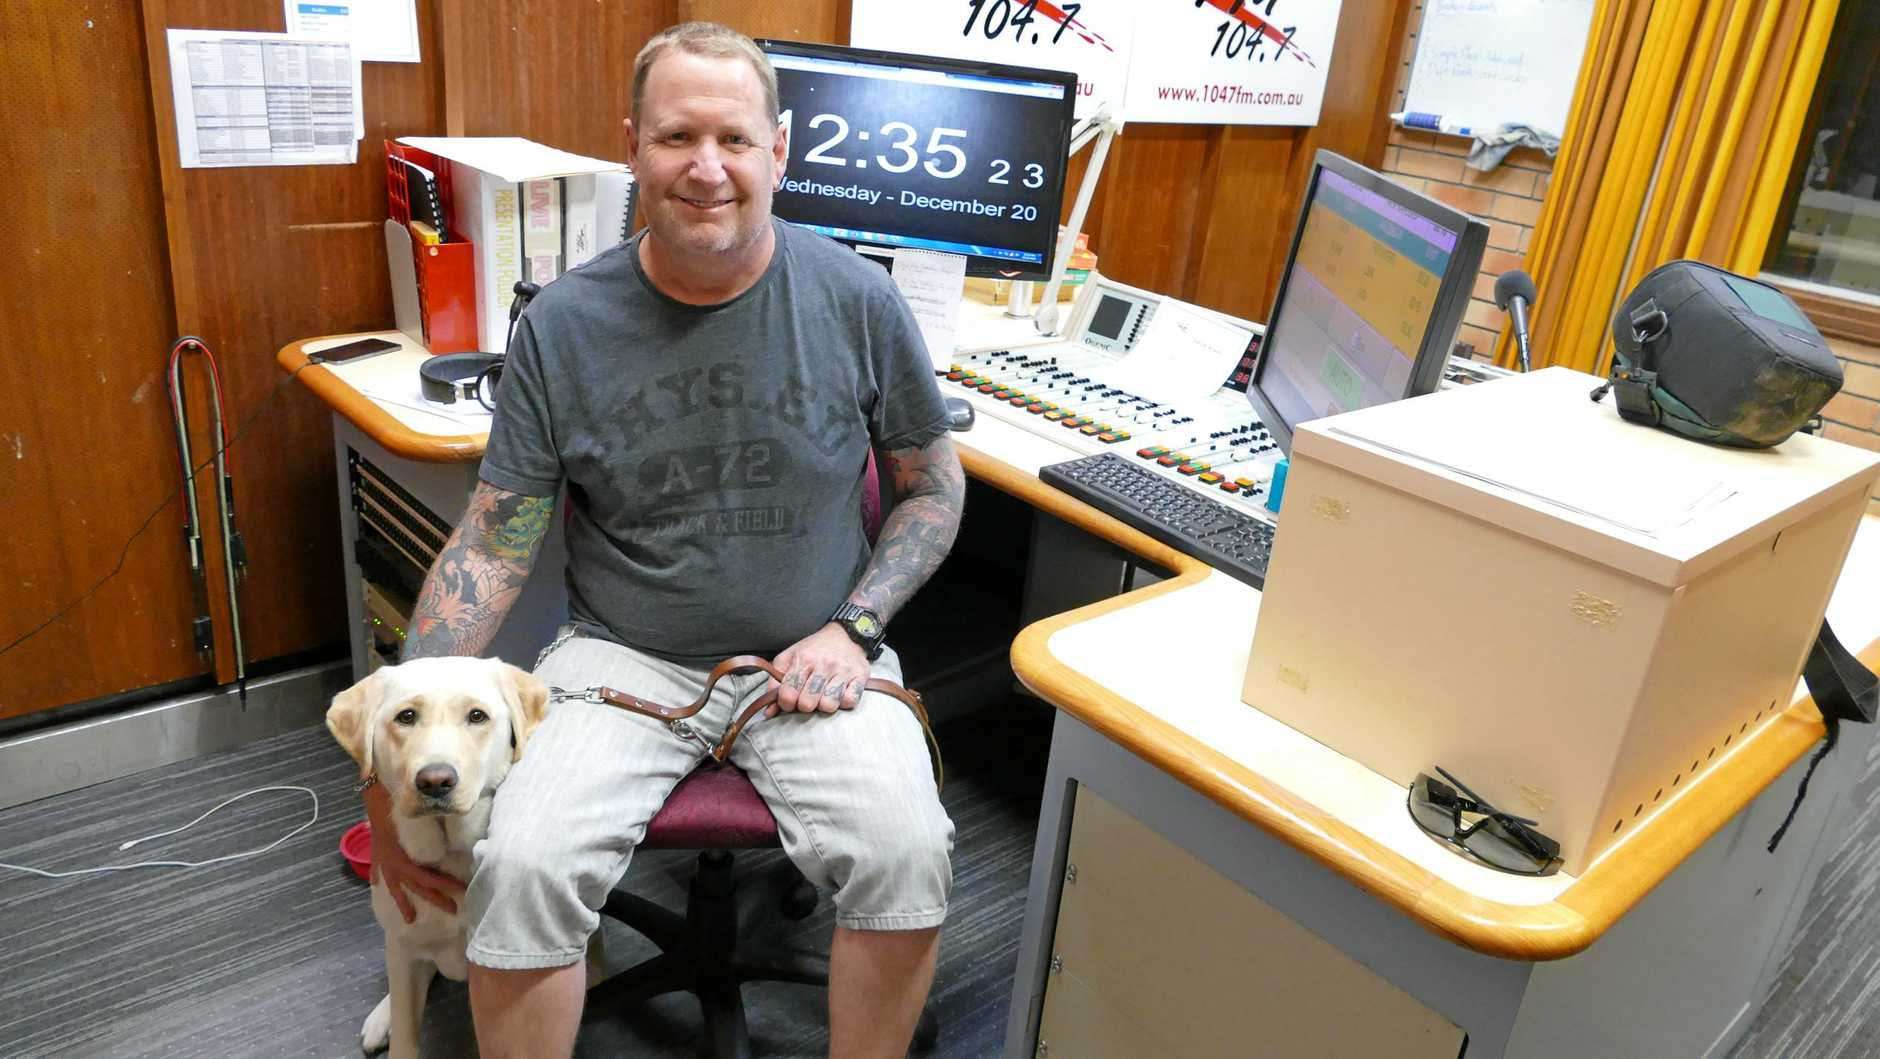 WORKING DOG: Radio 104.7FM disc jockey Phil Kennedy with his new guide dog Wanda in the studio.